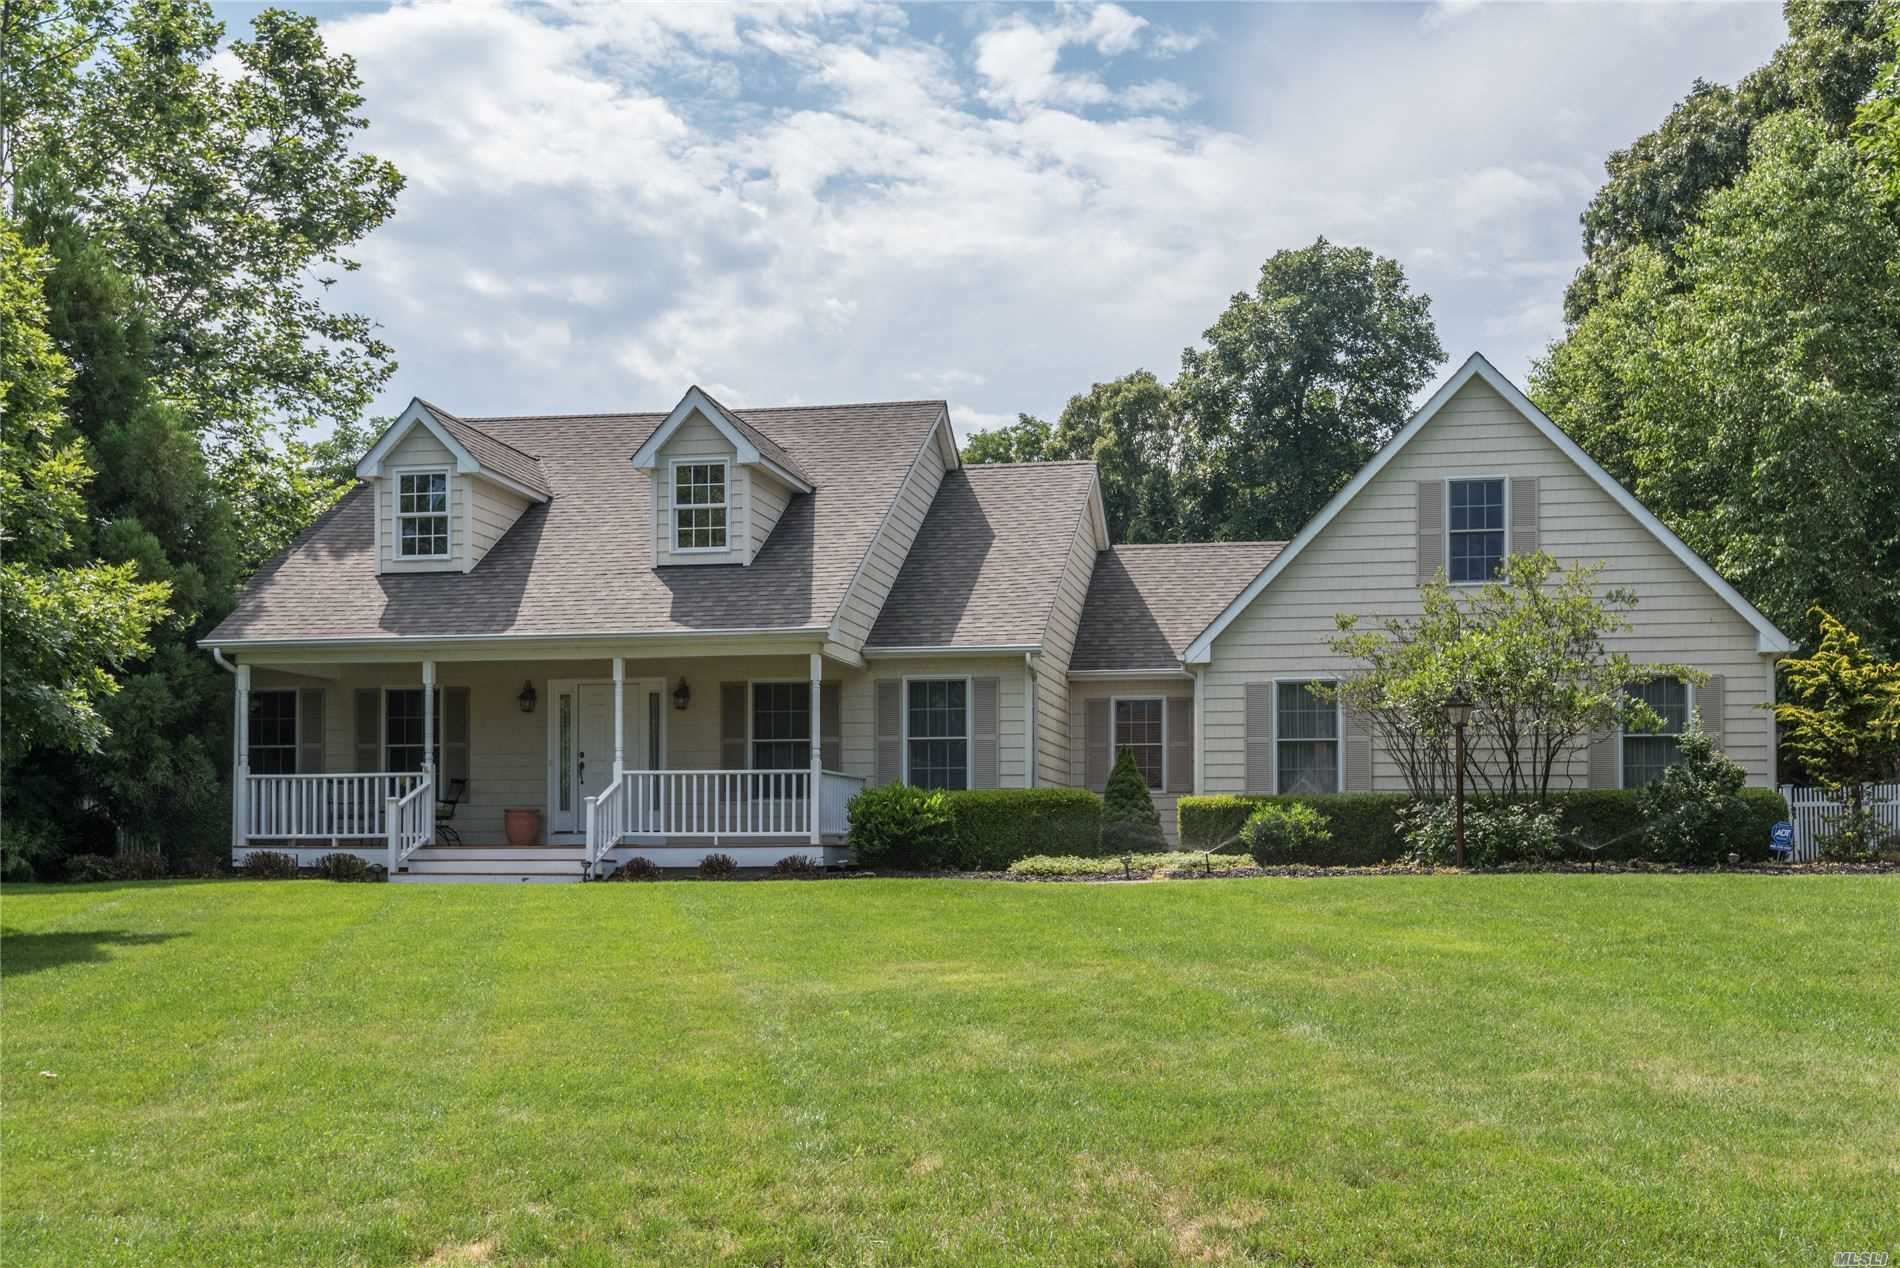 71 N Woods Drive, Wading River, NY 11792 - MLS#: 3191625